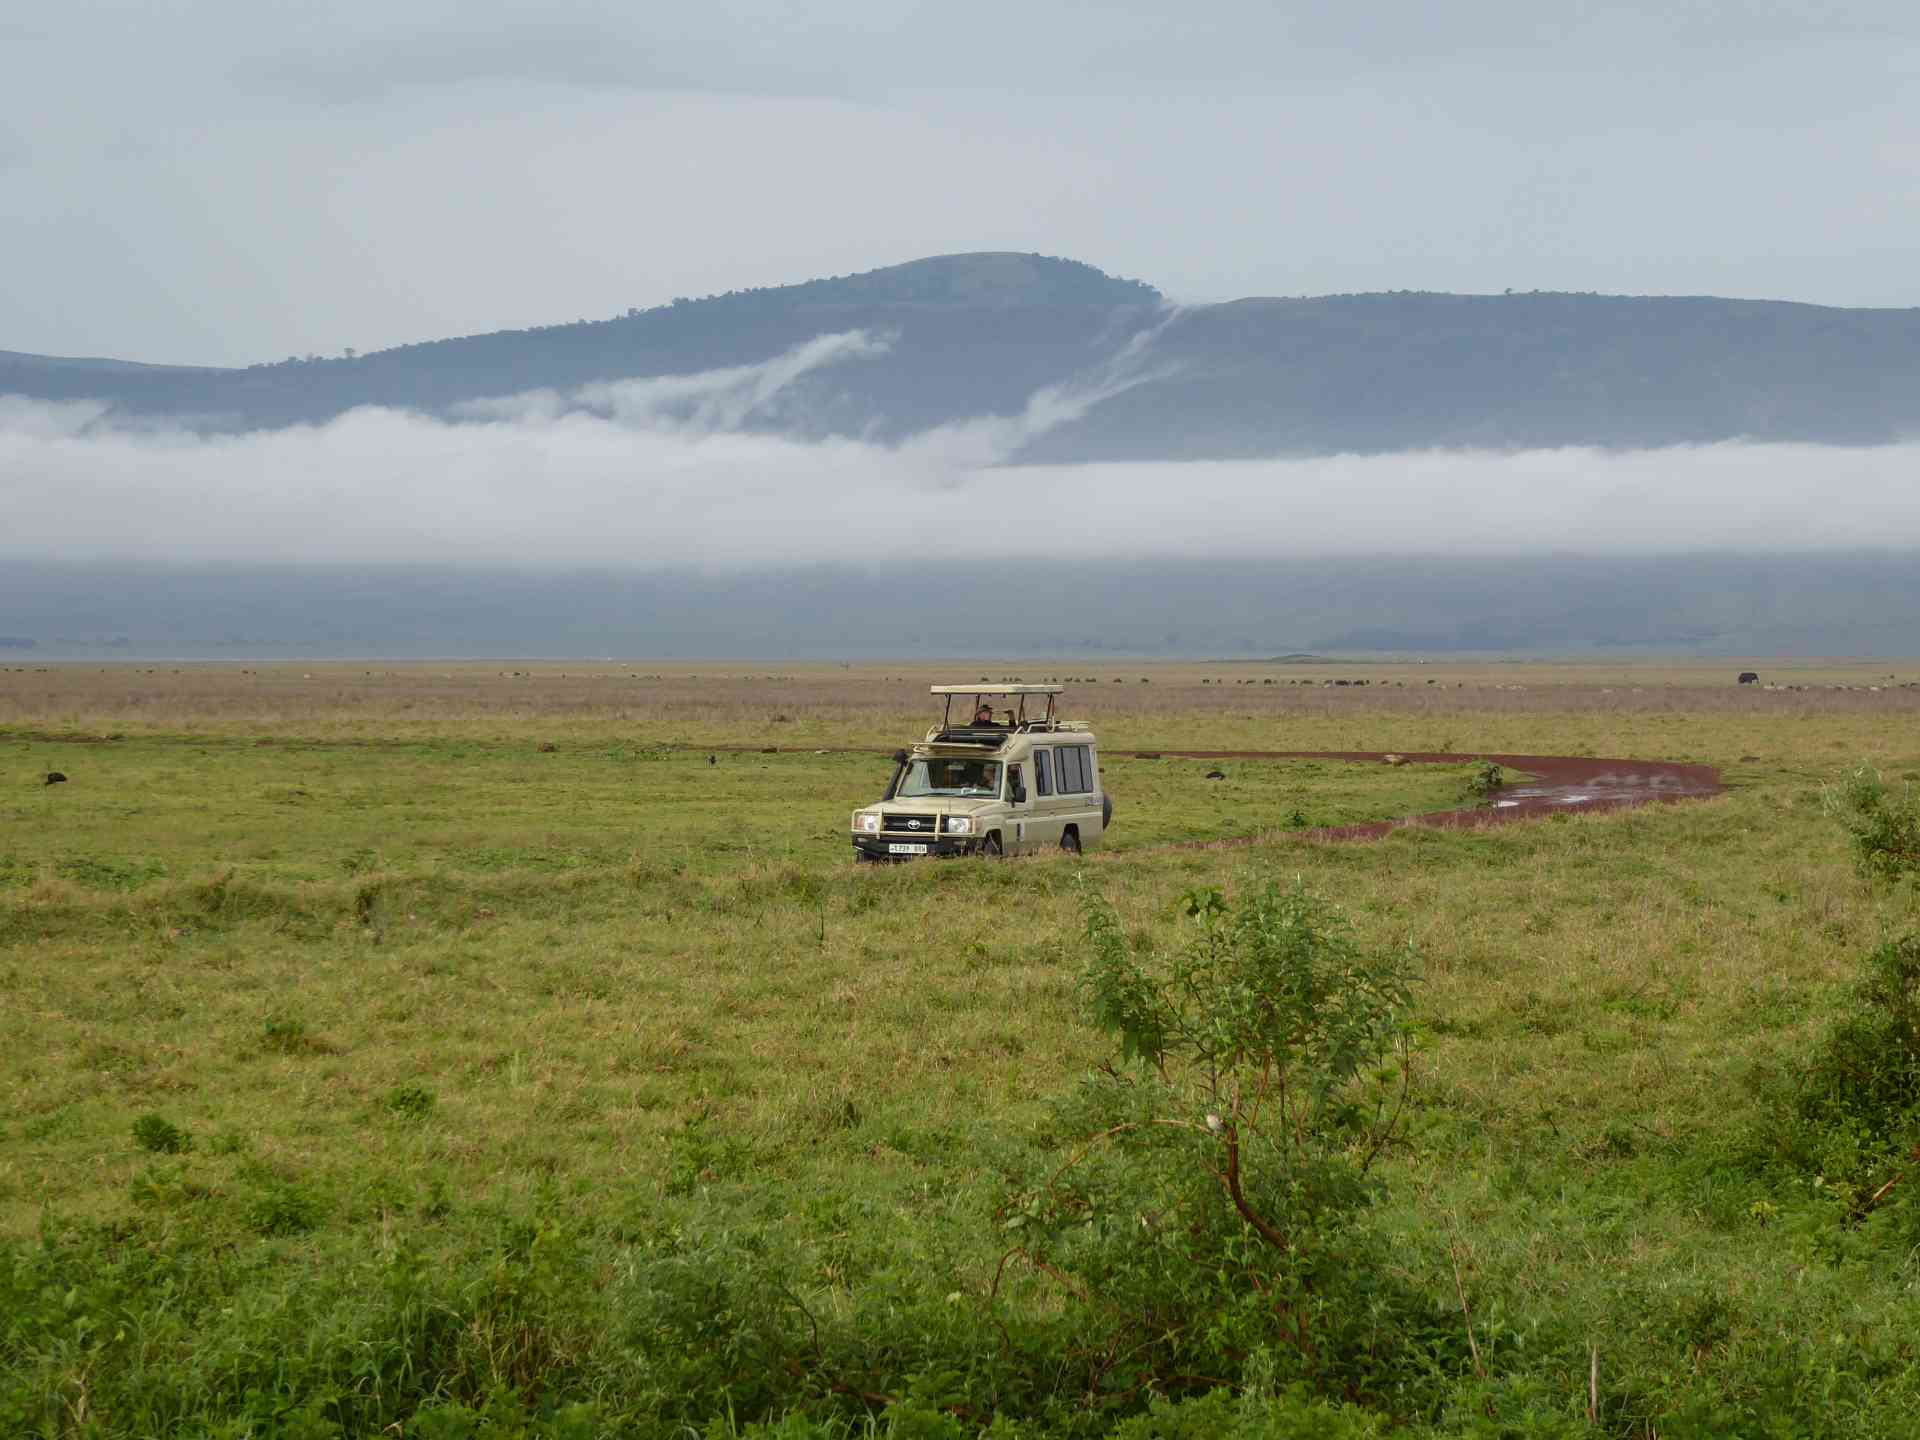 Safari in Ngorongoro Crater, Tanzania by Dennis Bunnik